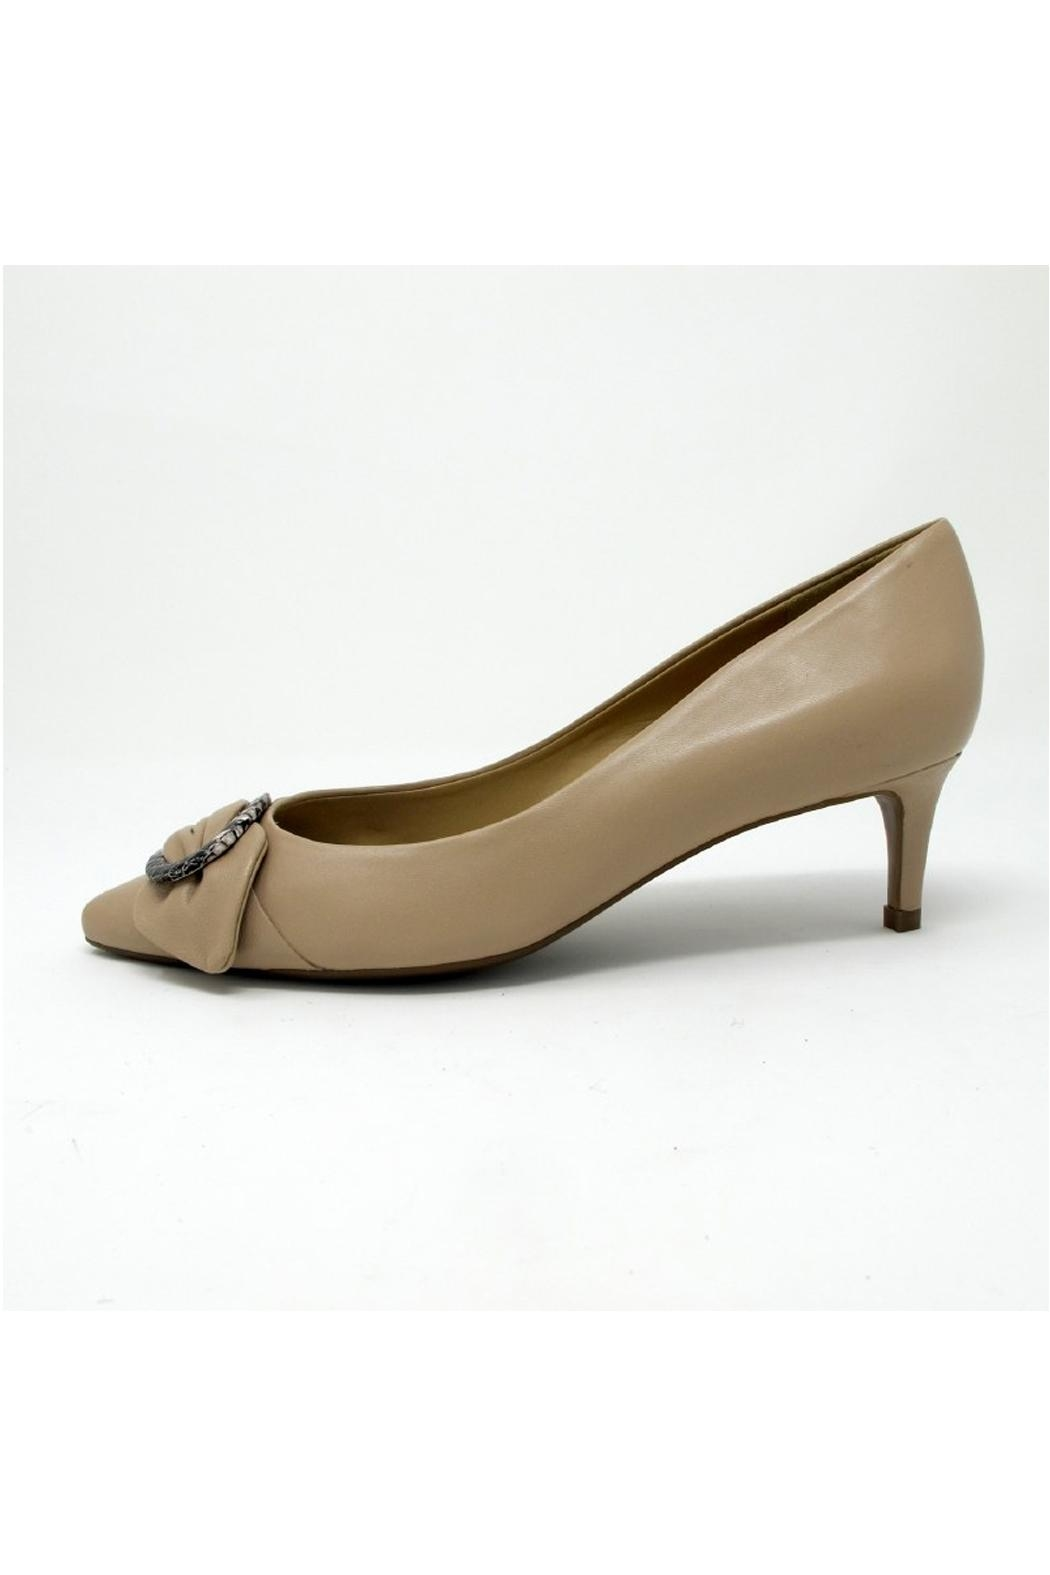 021900bc7c21 Vaneli Nude Patent Heel from South Carolina by Baehr Feet Shoe ...